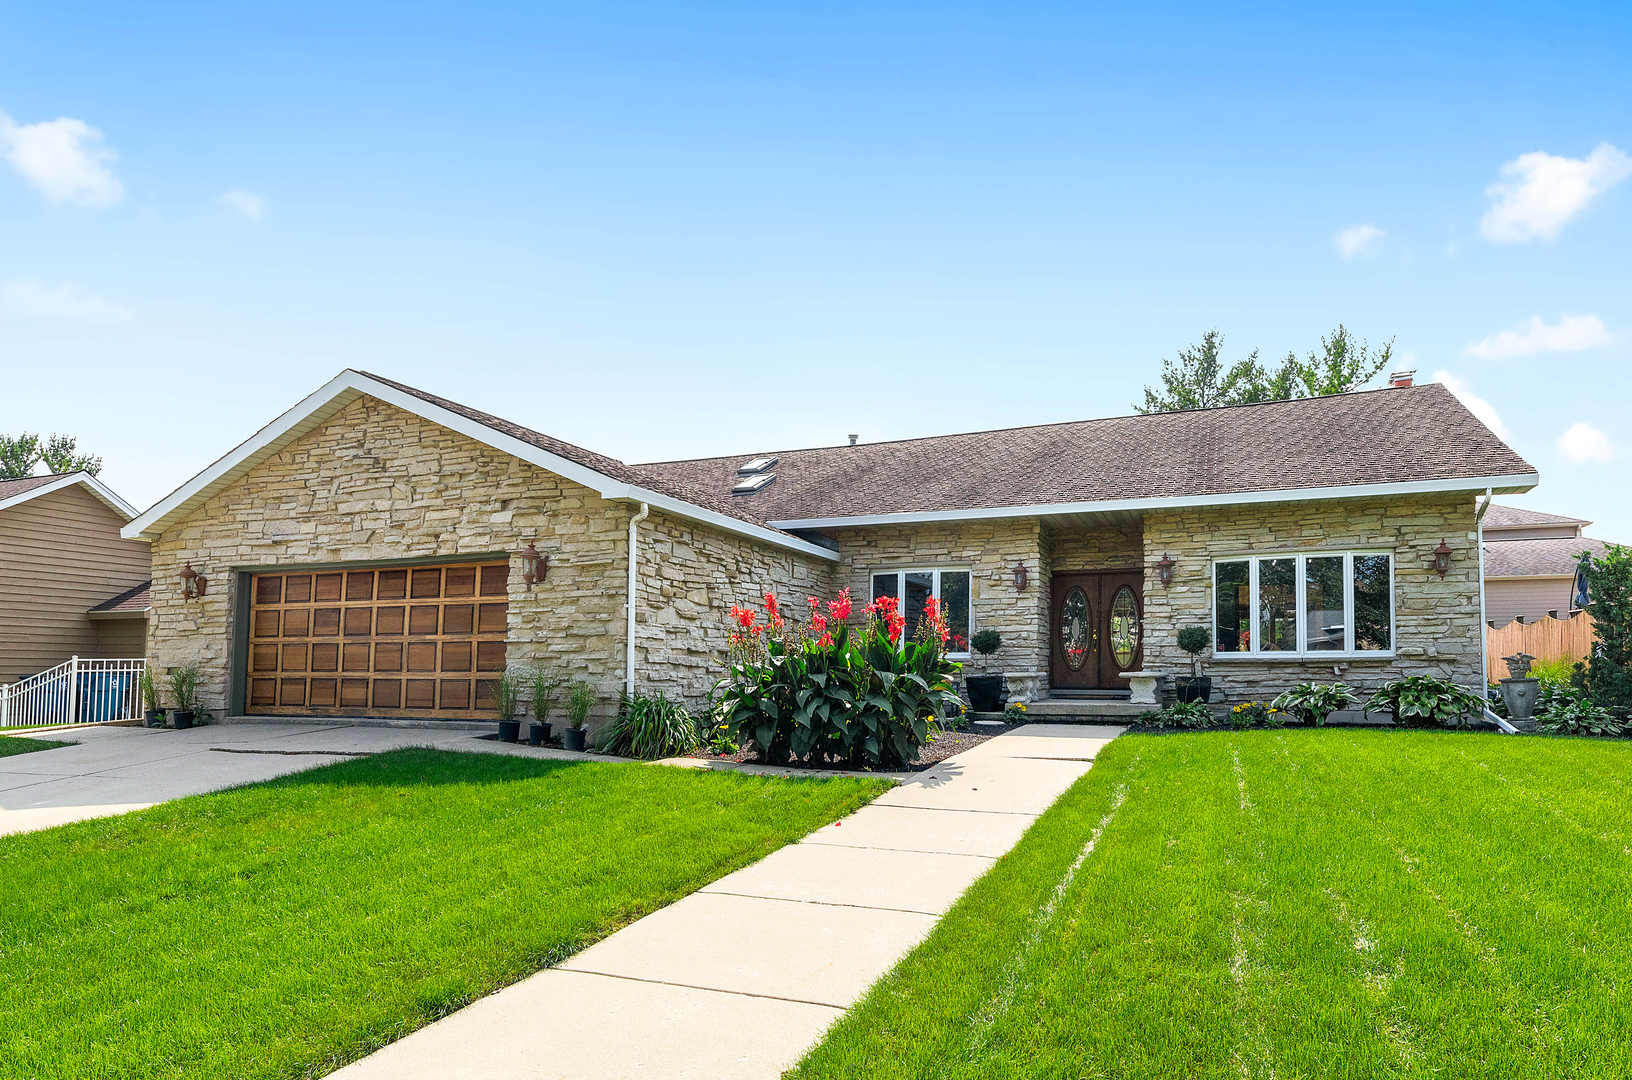 Photo for 1421 Bradley Court, Downers Grove, IL 60516 (MLS # 10863444)